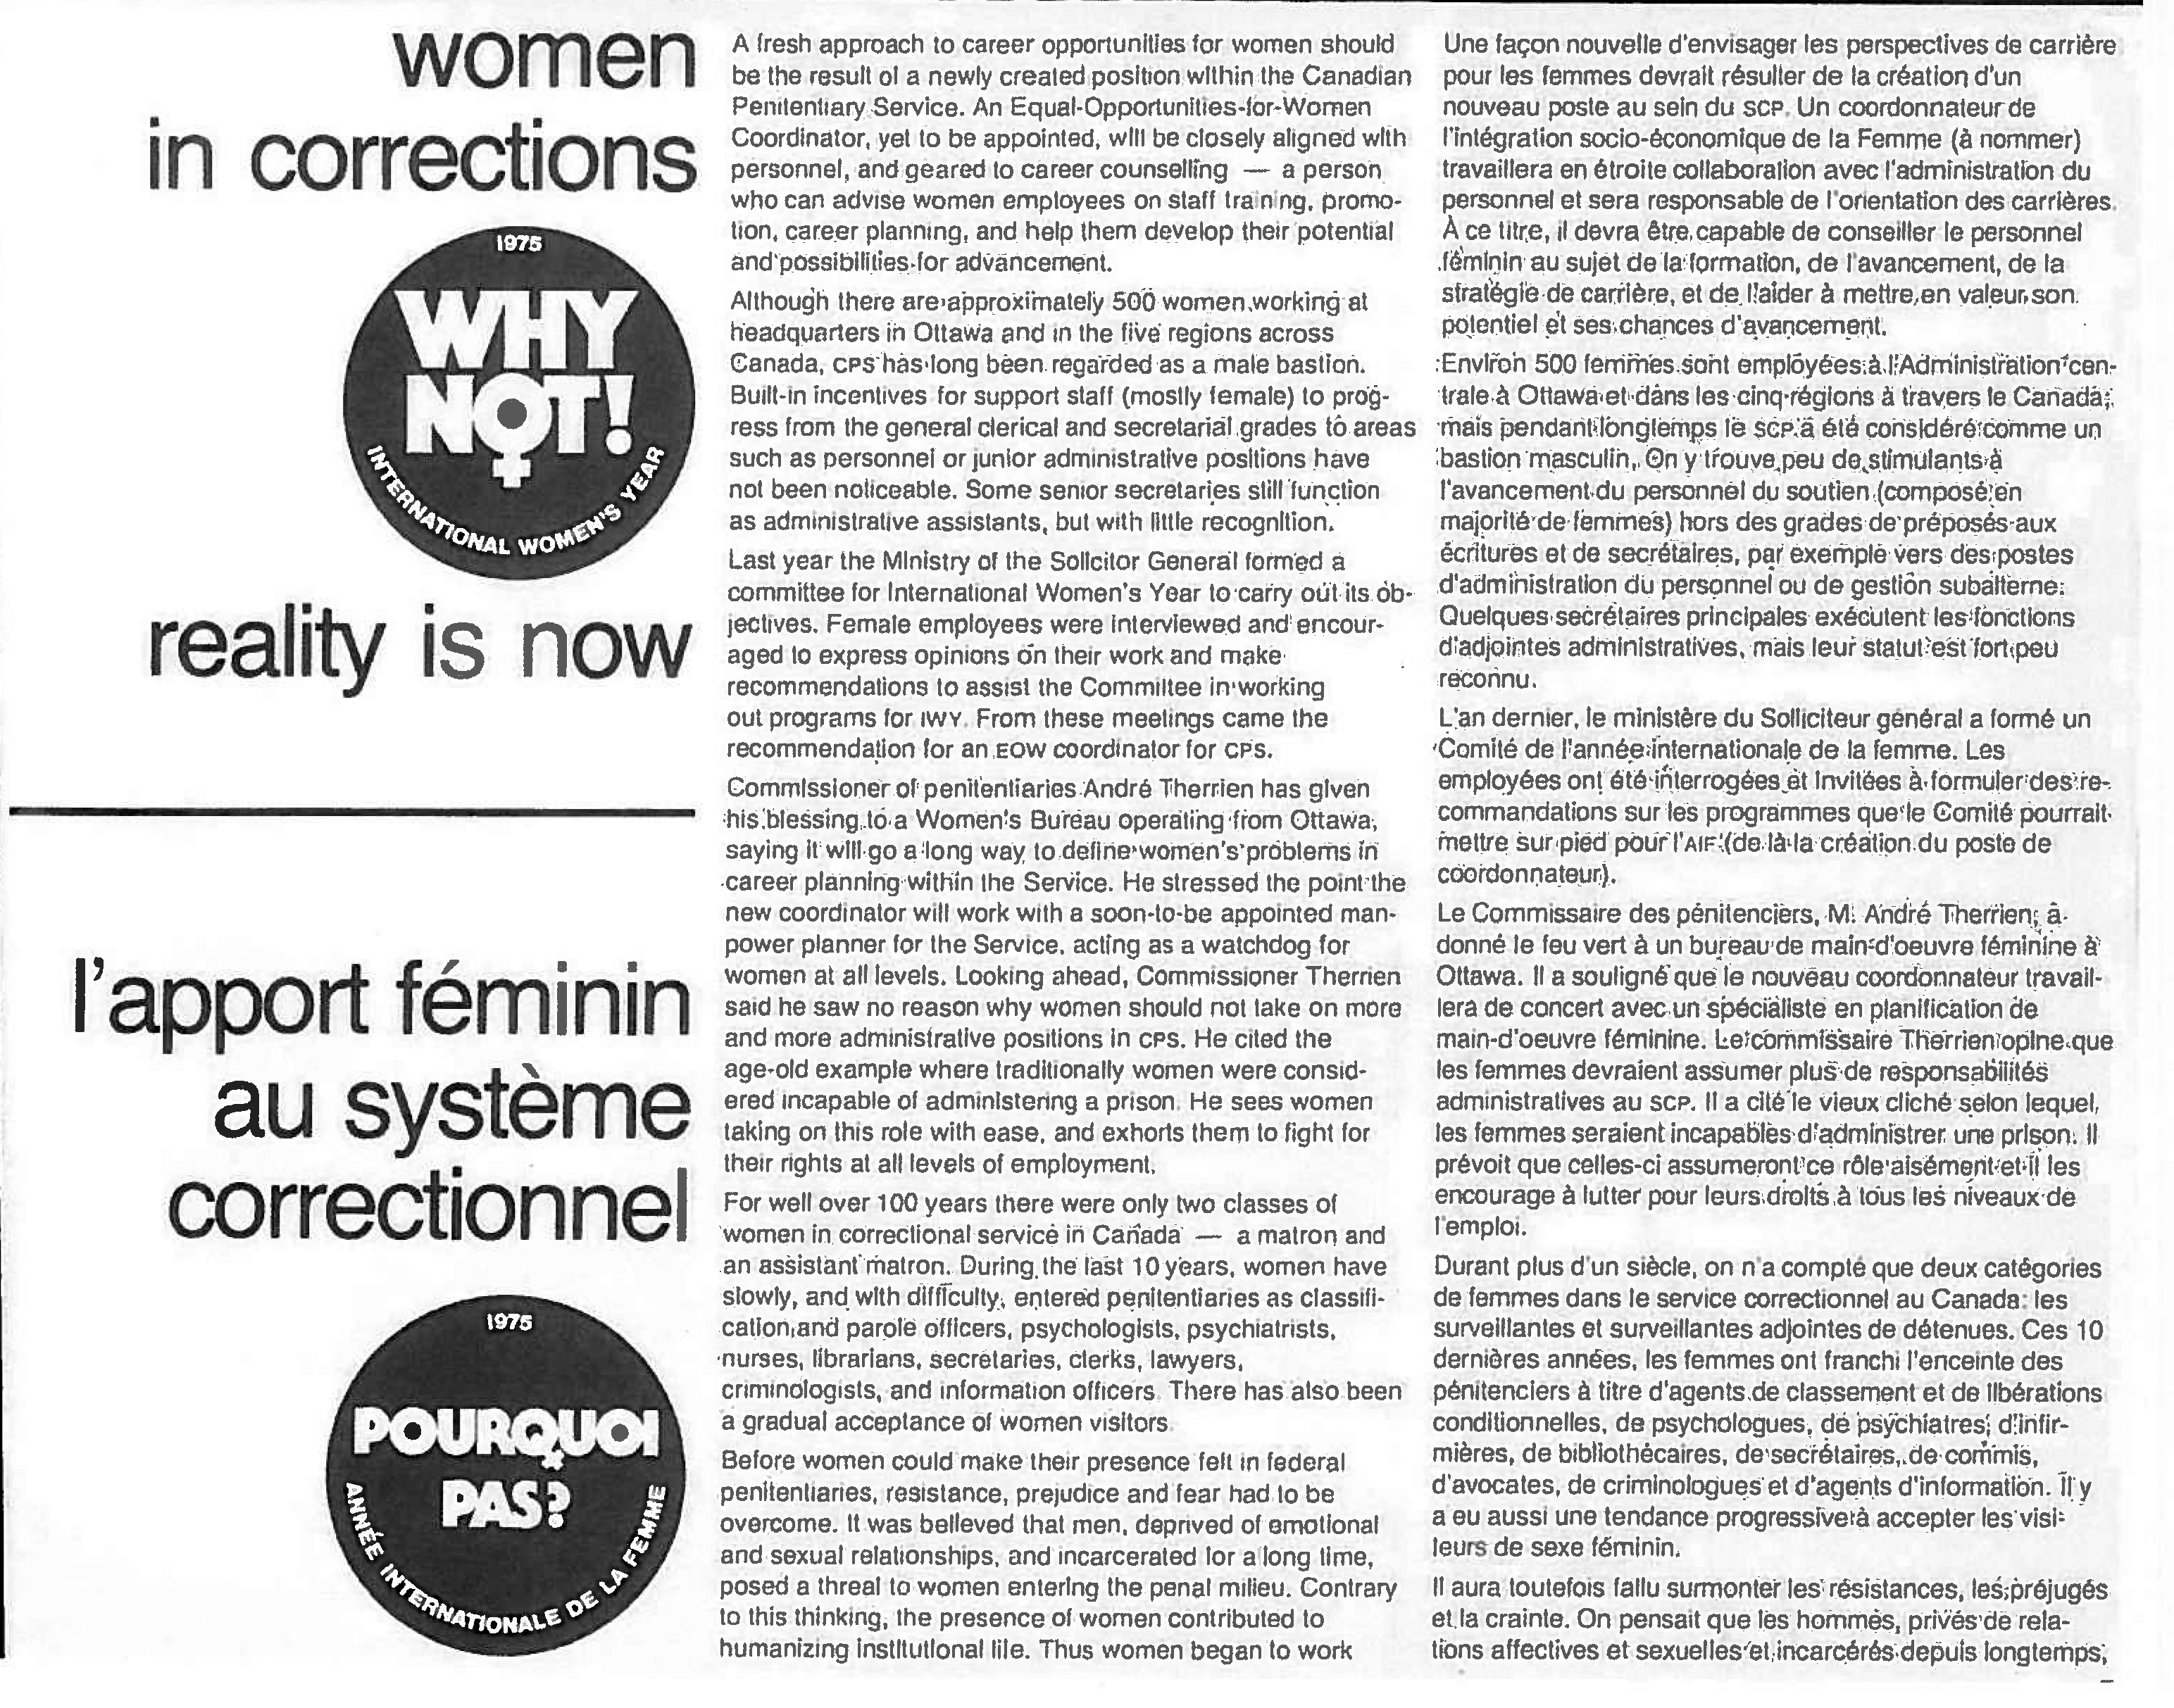 An article about women in corrections - 1975